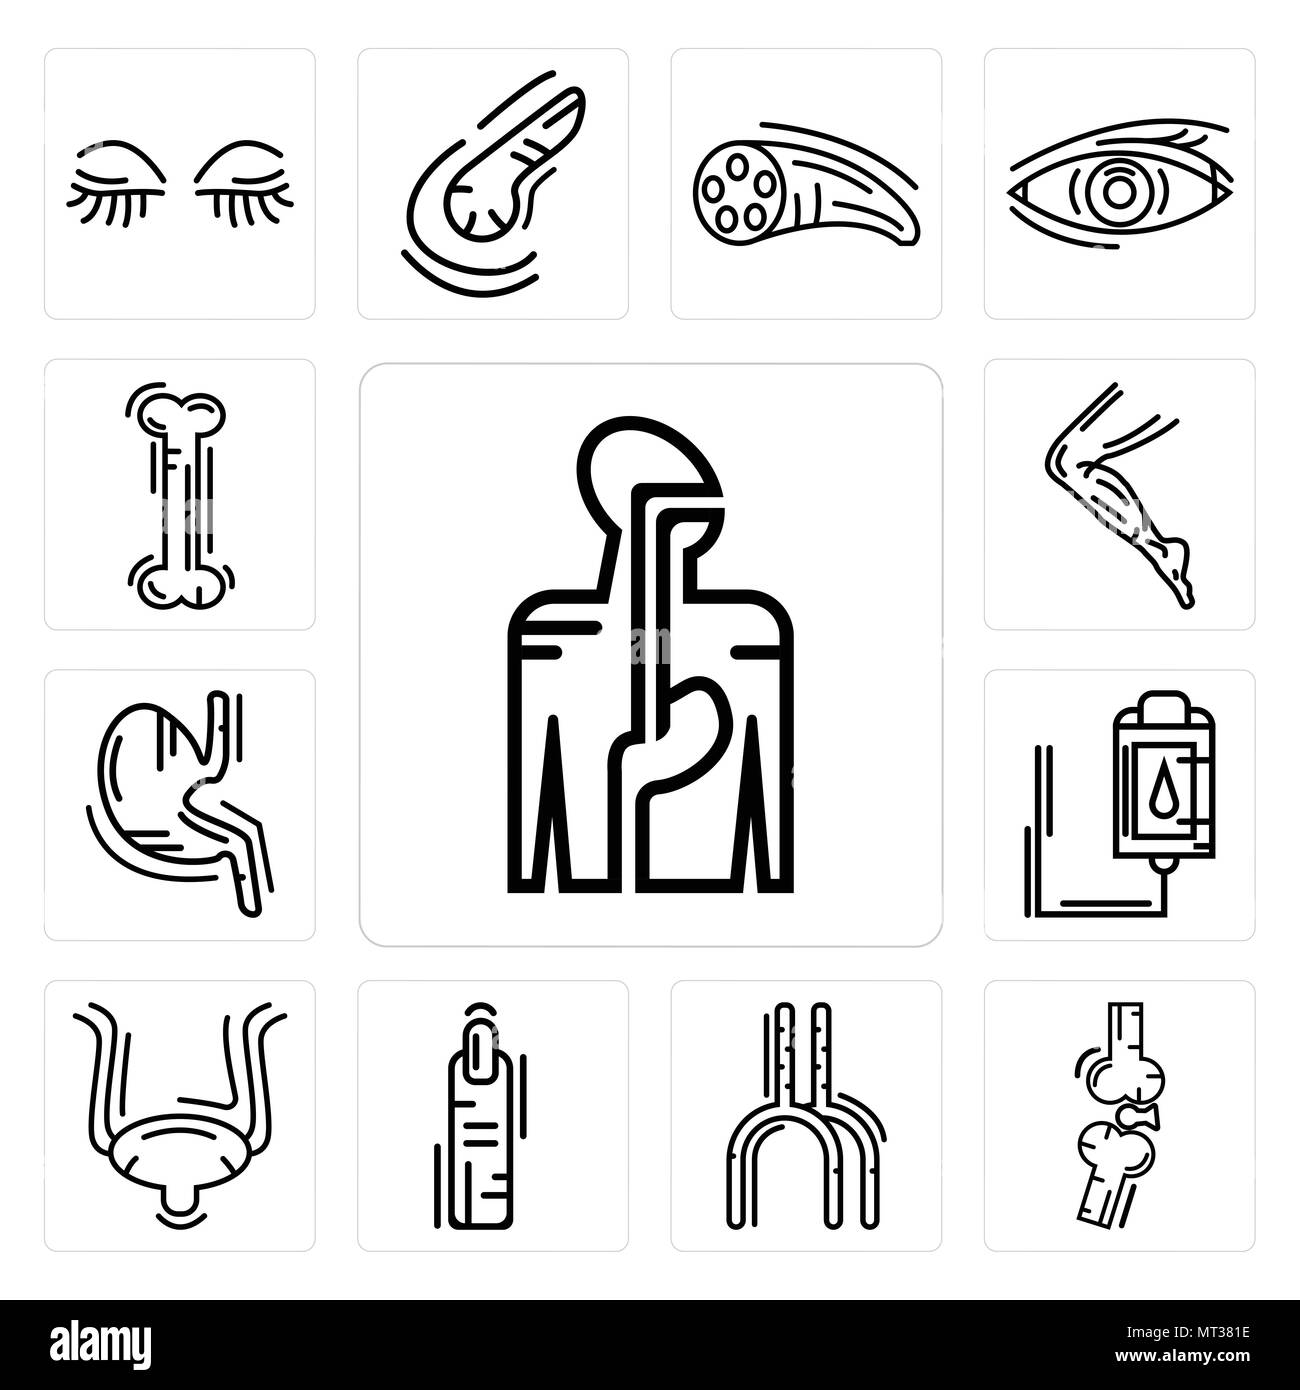 Set Of 13 simple editable icons such as Digestive System, Bones Joint, Human Artery, Finger, Bladder, Blood Transfusion, Stomach with Liquids, Men Leg - Stock Image